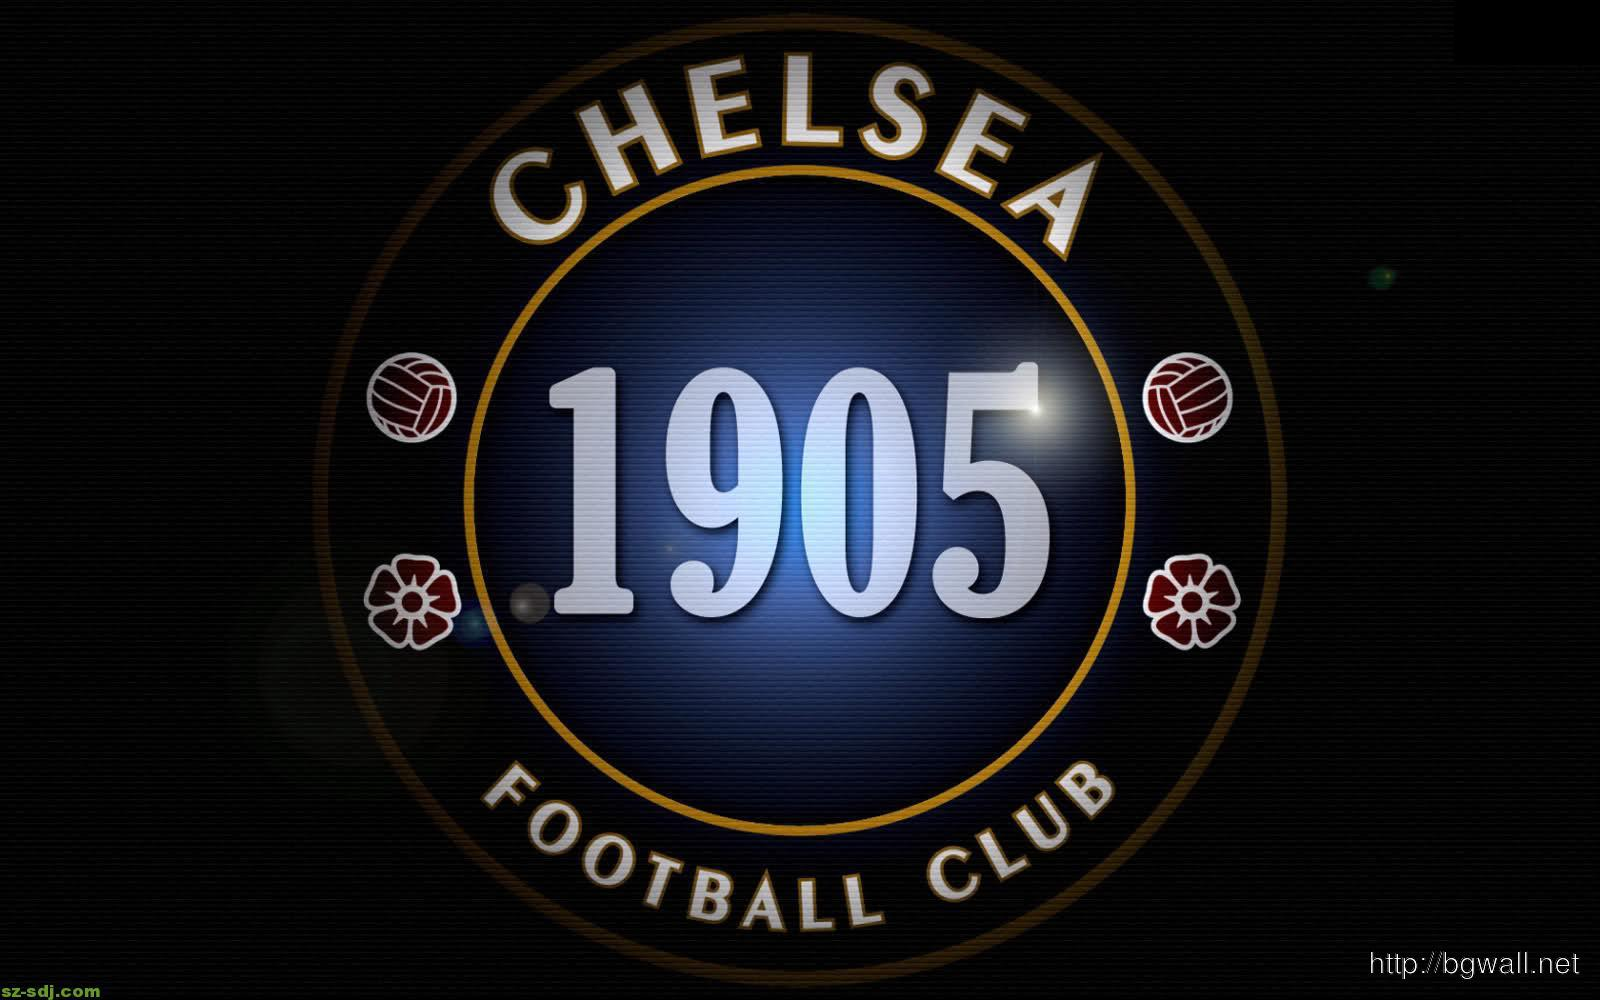 Black Chelsea Logo Wallpaper Hd Image – Background Wallpaper HD